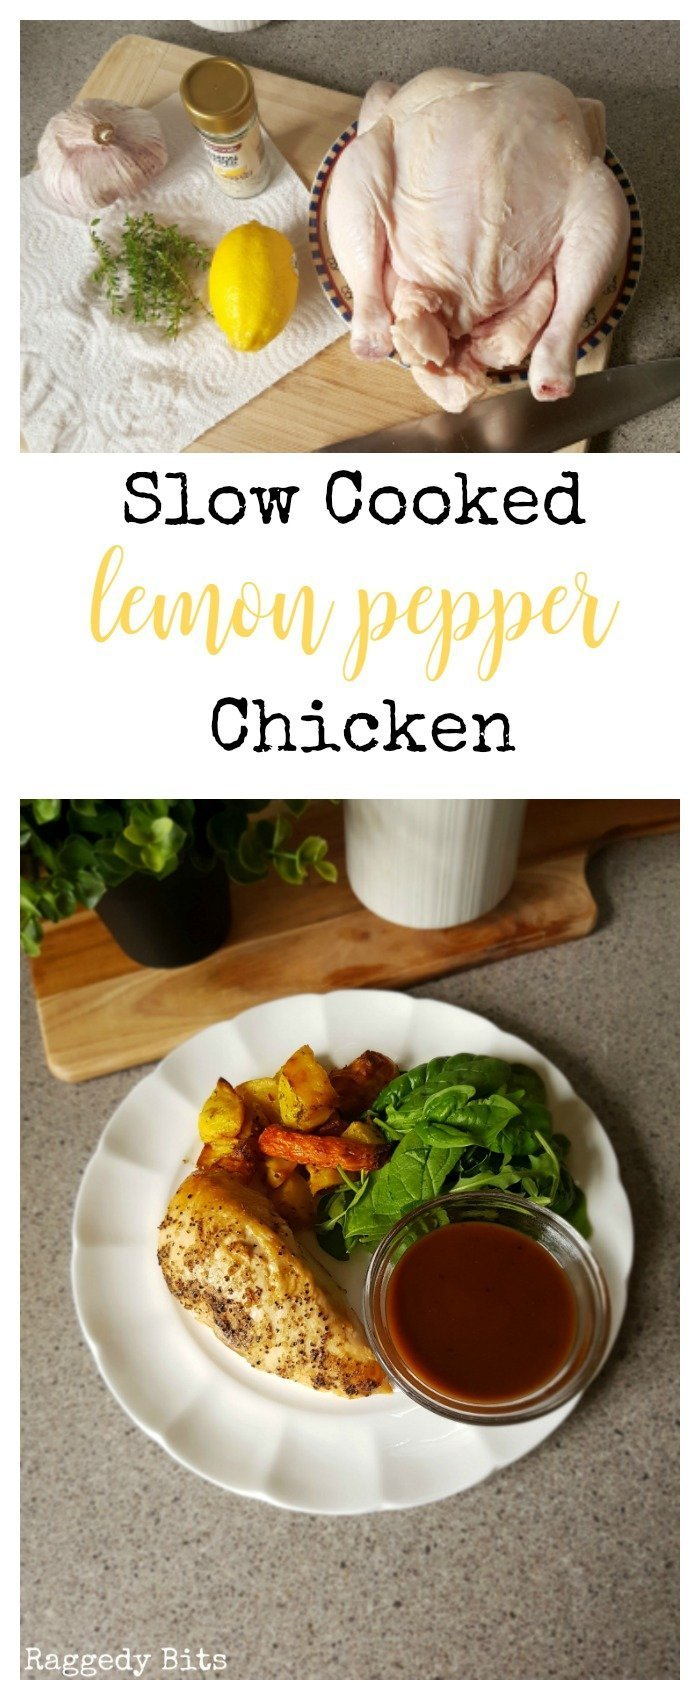 Sharing an all time Slow Cooked Lemon Pepper favourite recipe of my families to enjoy all year round. For a Sunday night roast served with salad or roasted vegetables or serve cold and take along for a family picinic | Printable recipe | www.raggedy-bits.com